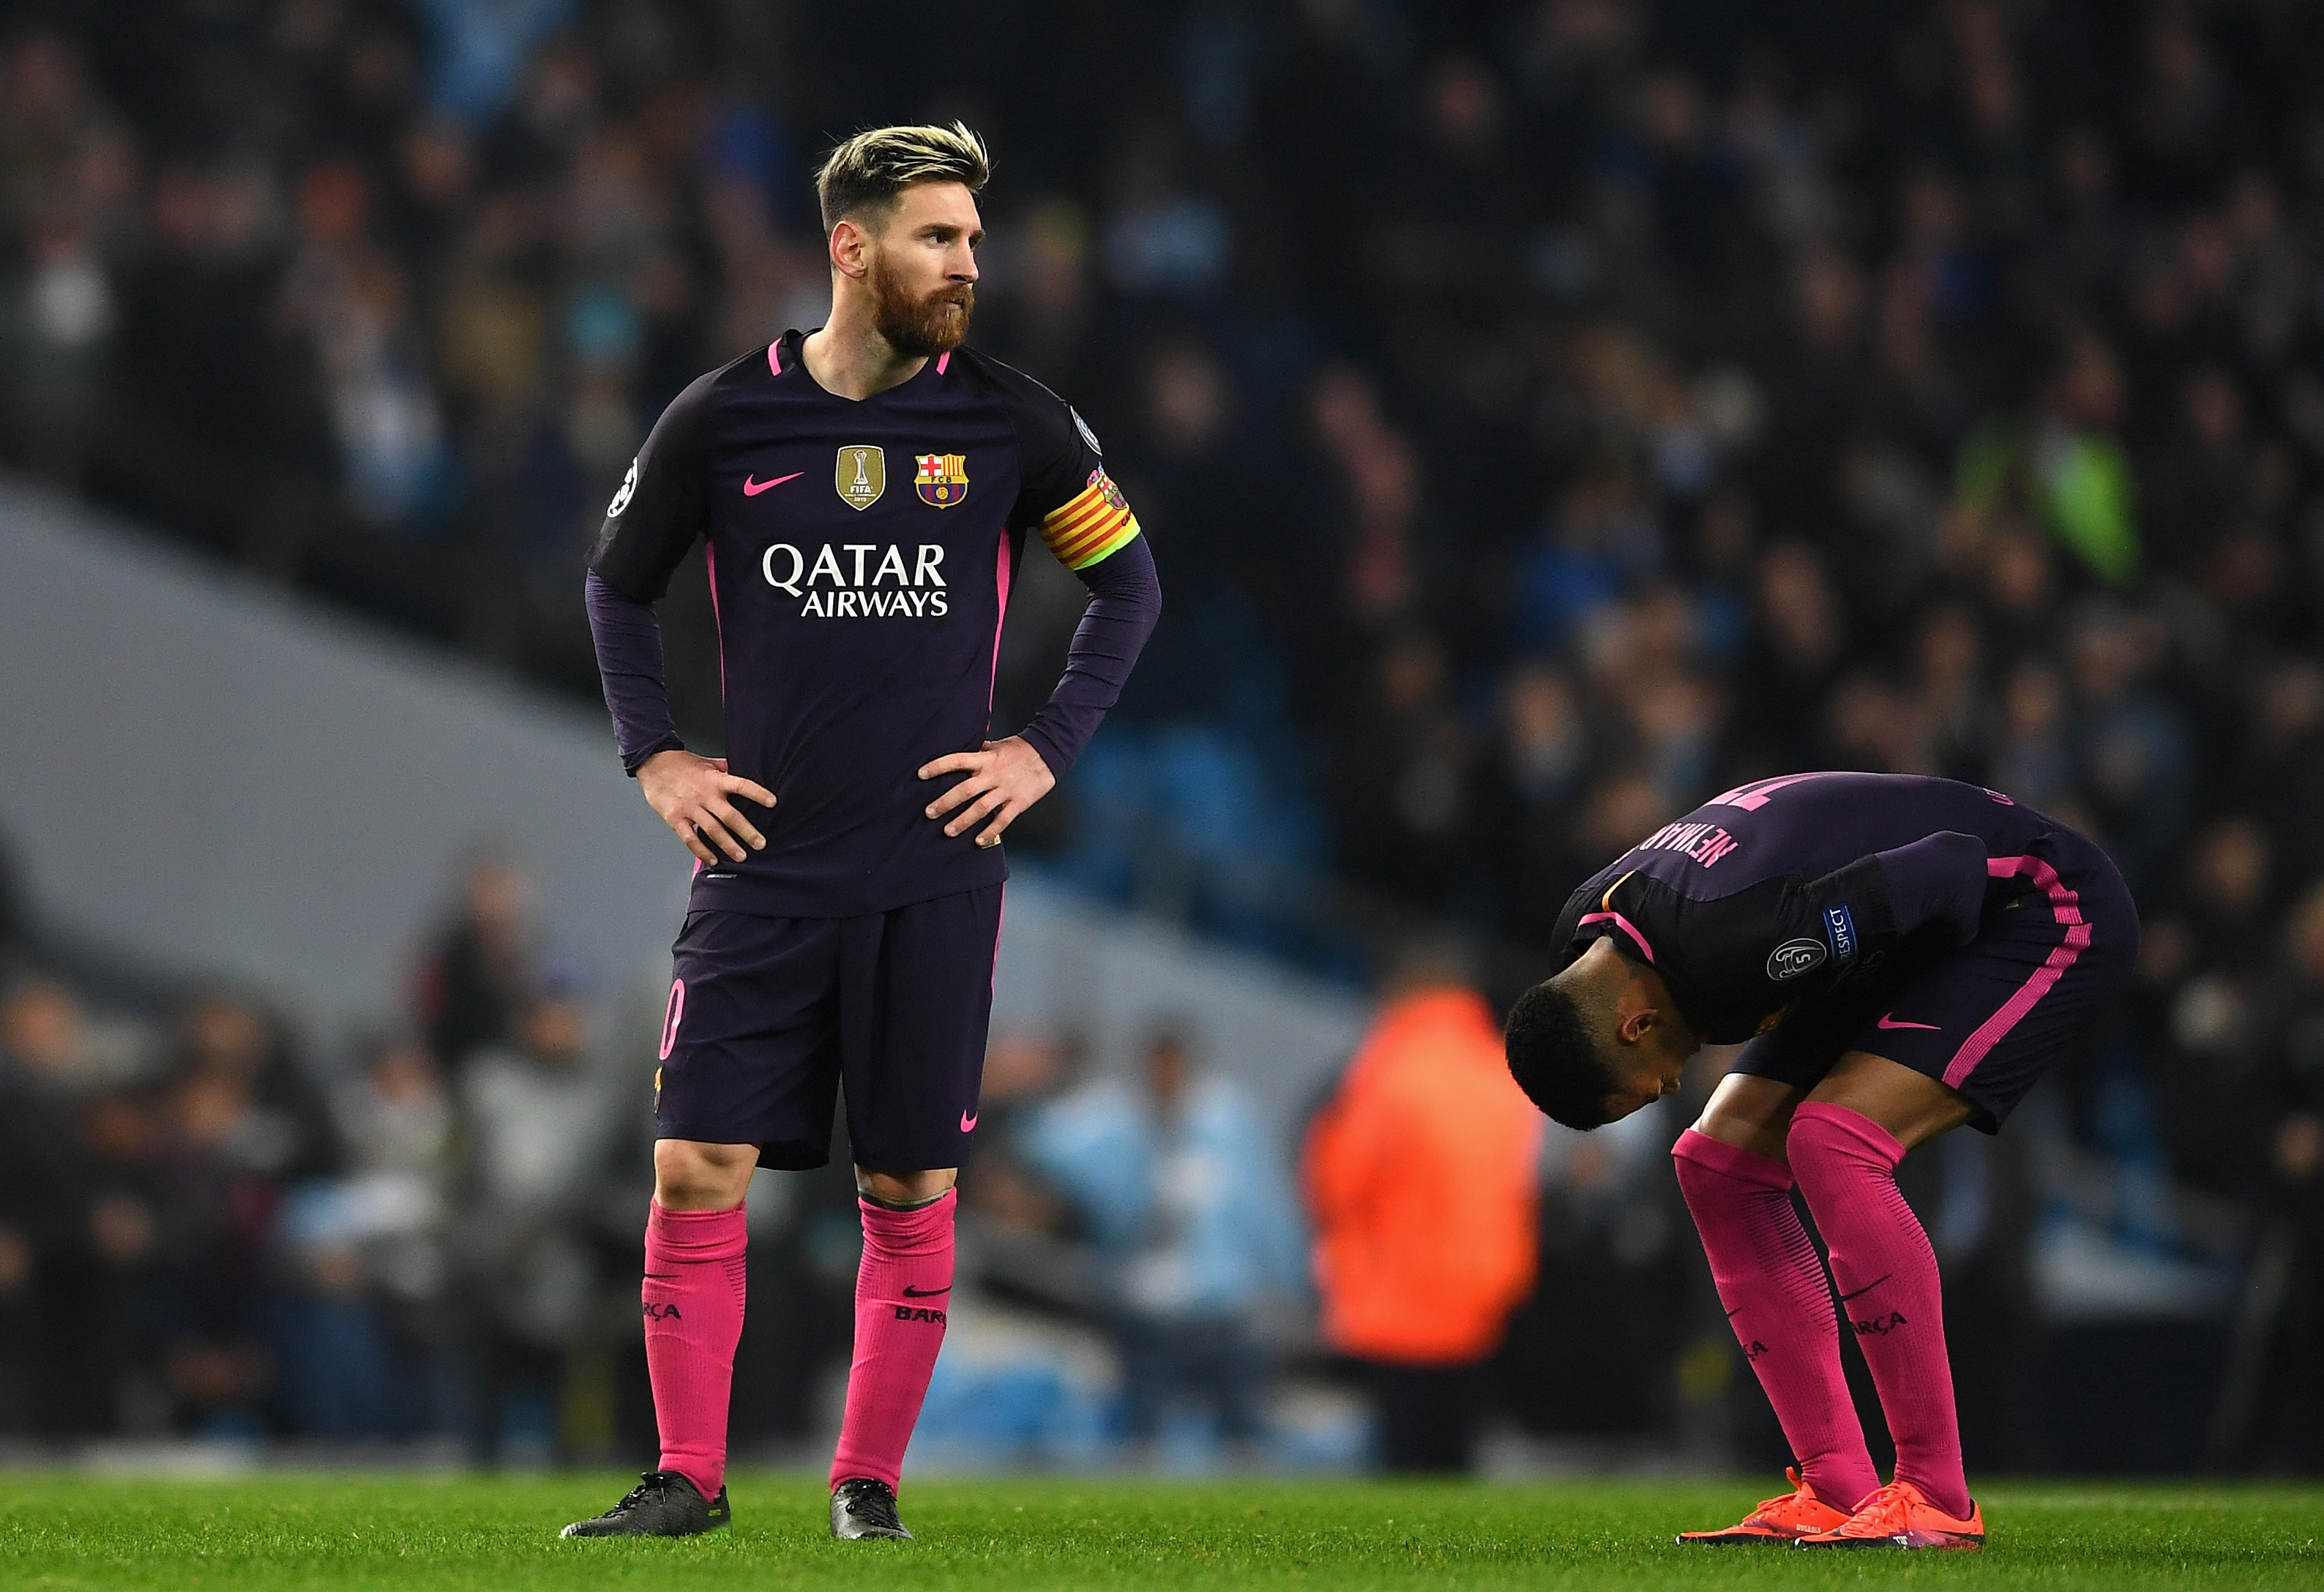 MANCHESTER, ENGLAND - NOVEMBER 01: Lionel Messi of Barcelona is dejected after the final whistle during the UEFA Champions League Group C match between Manchester City FC and FC Barcelona at Etihad Stadium on November 1, 2016 in Manchester, England. (Photo by Laurence Griffiths/Getty Images)